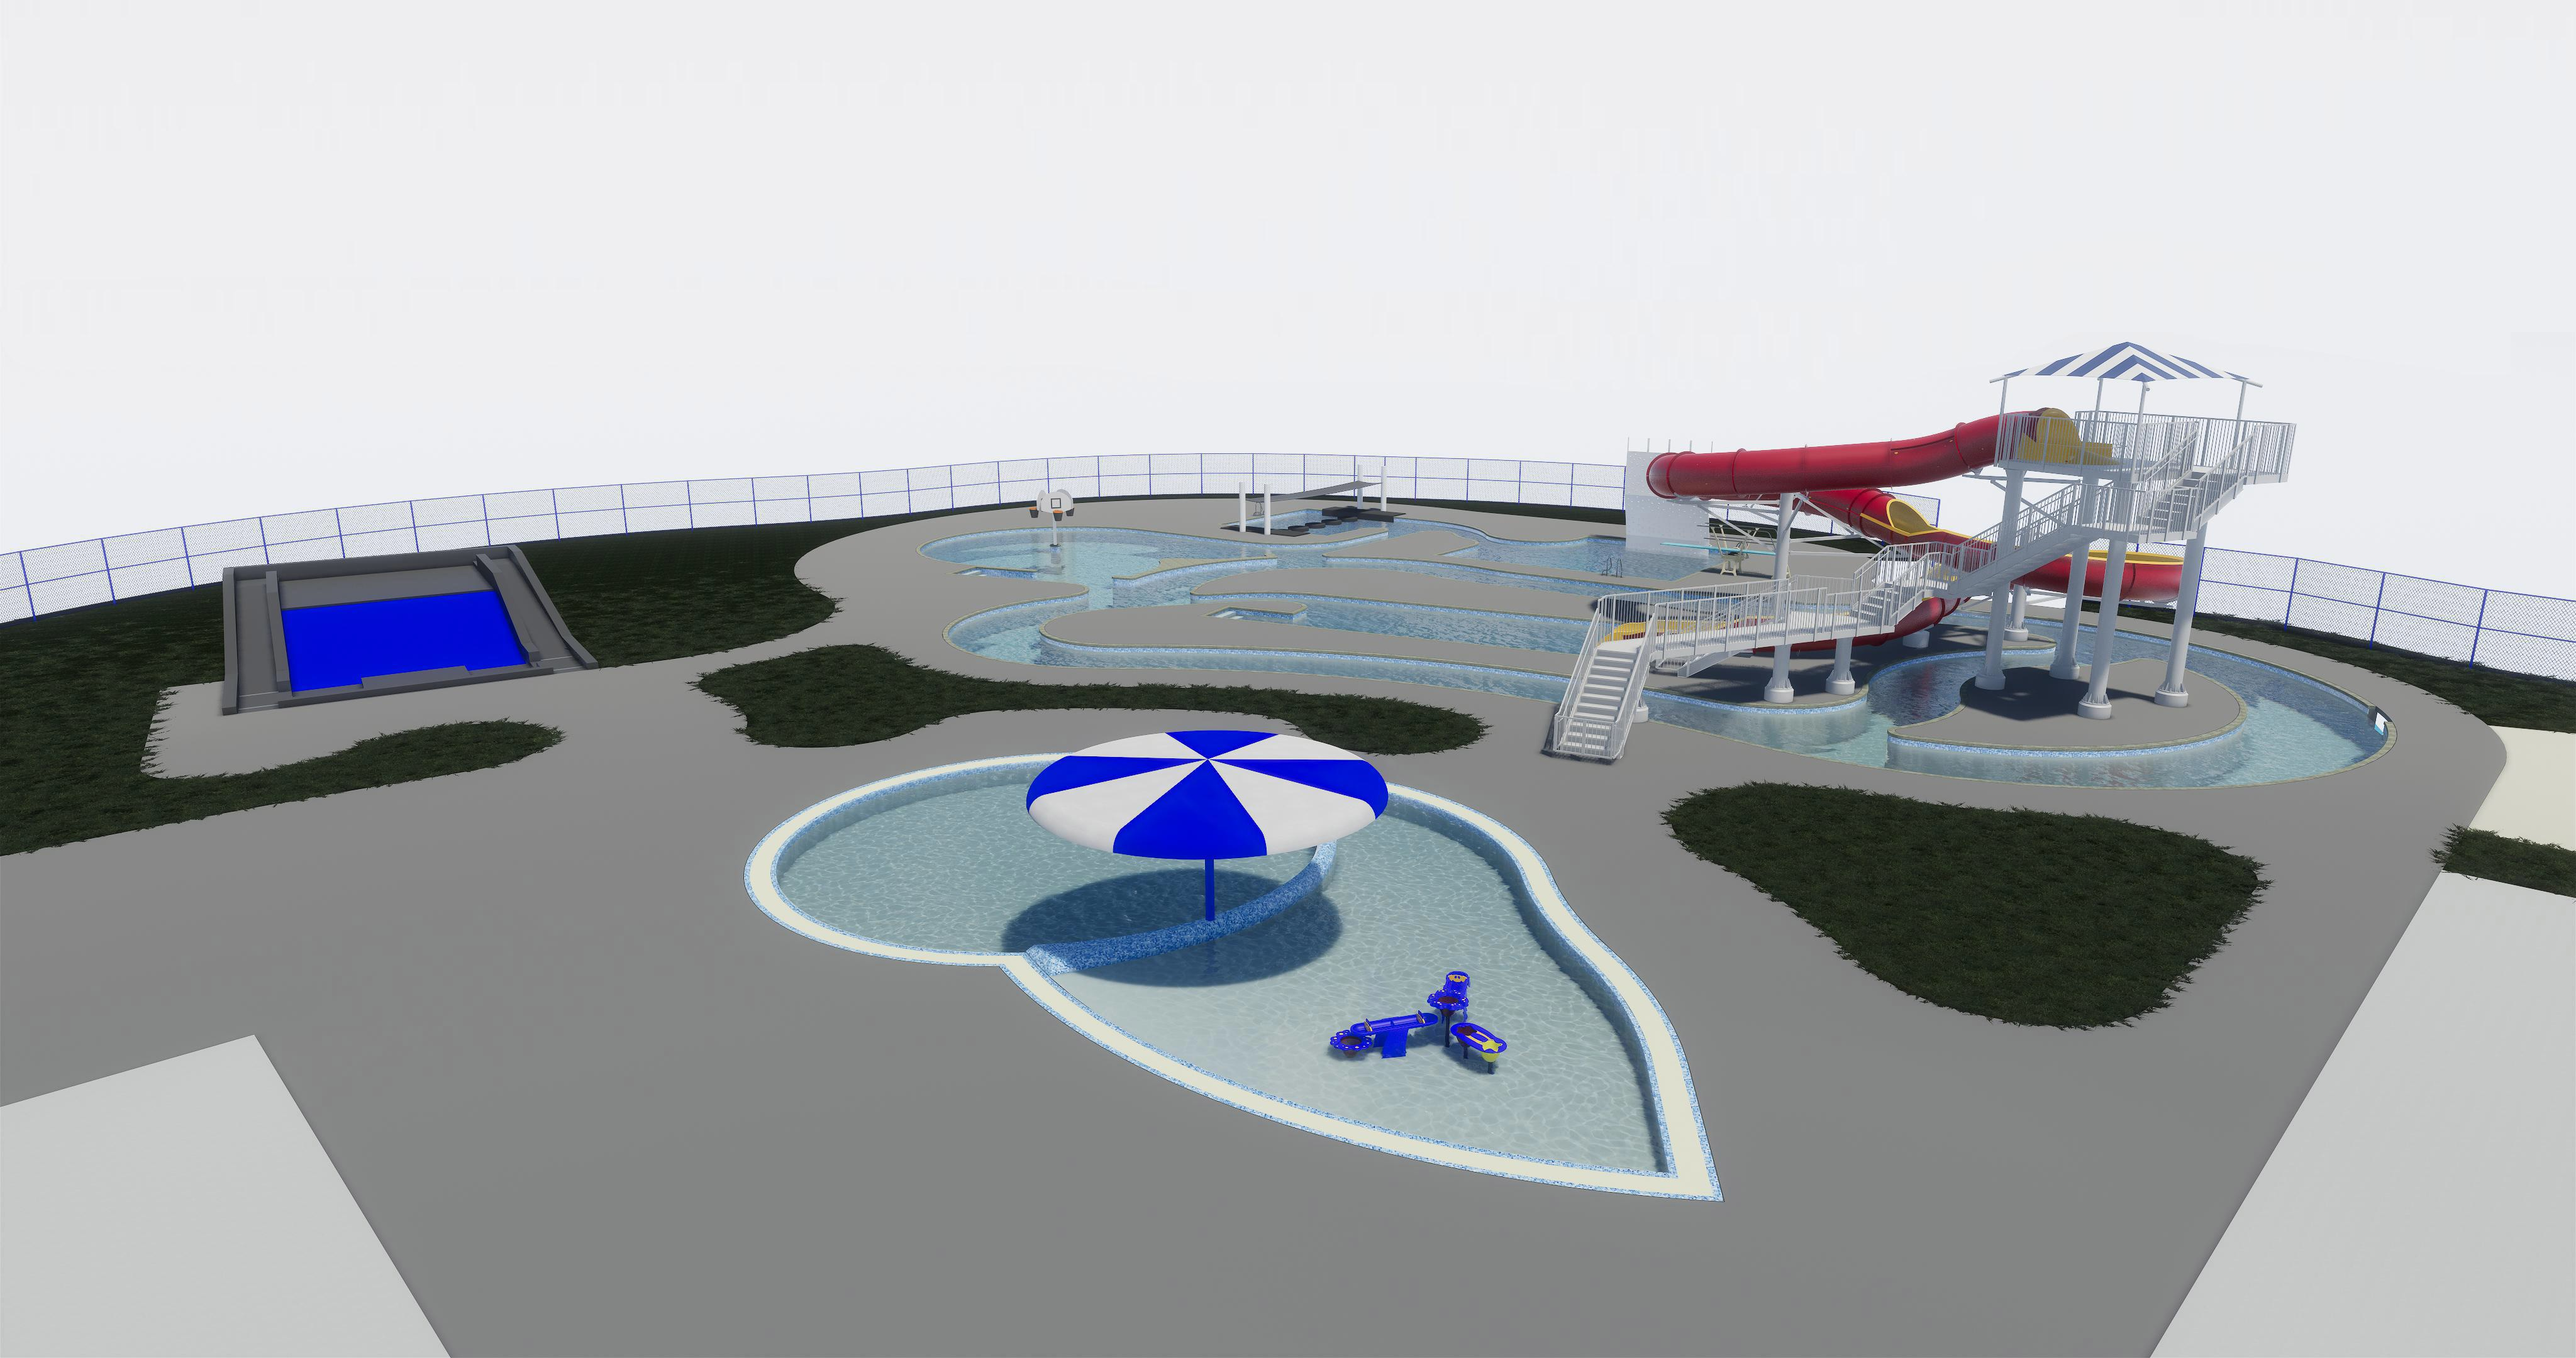 A rendering of one of the three options for a new aquatic center in De Pere. (Photo credit: City of De Pere)